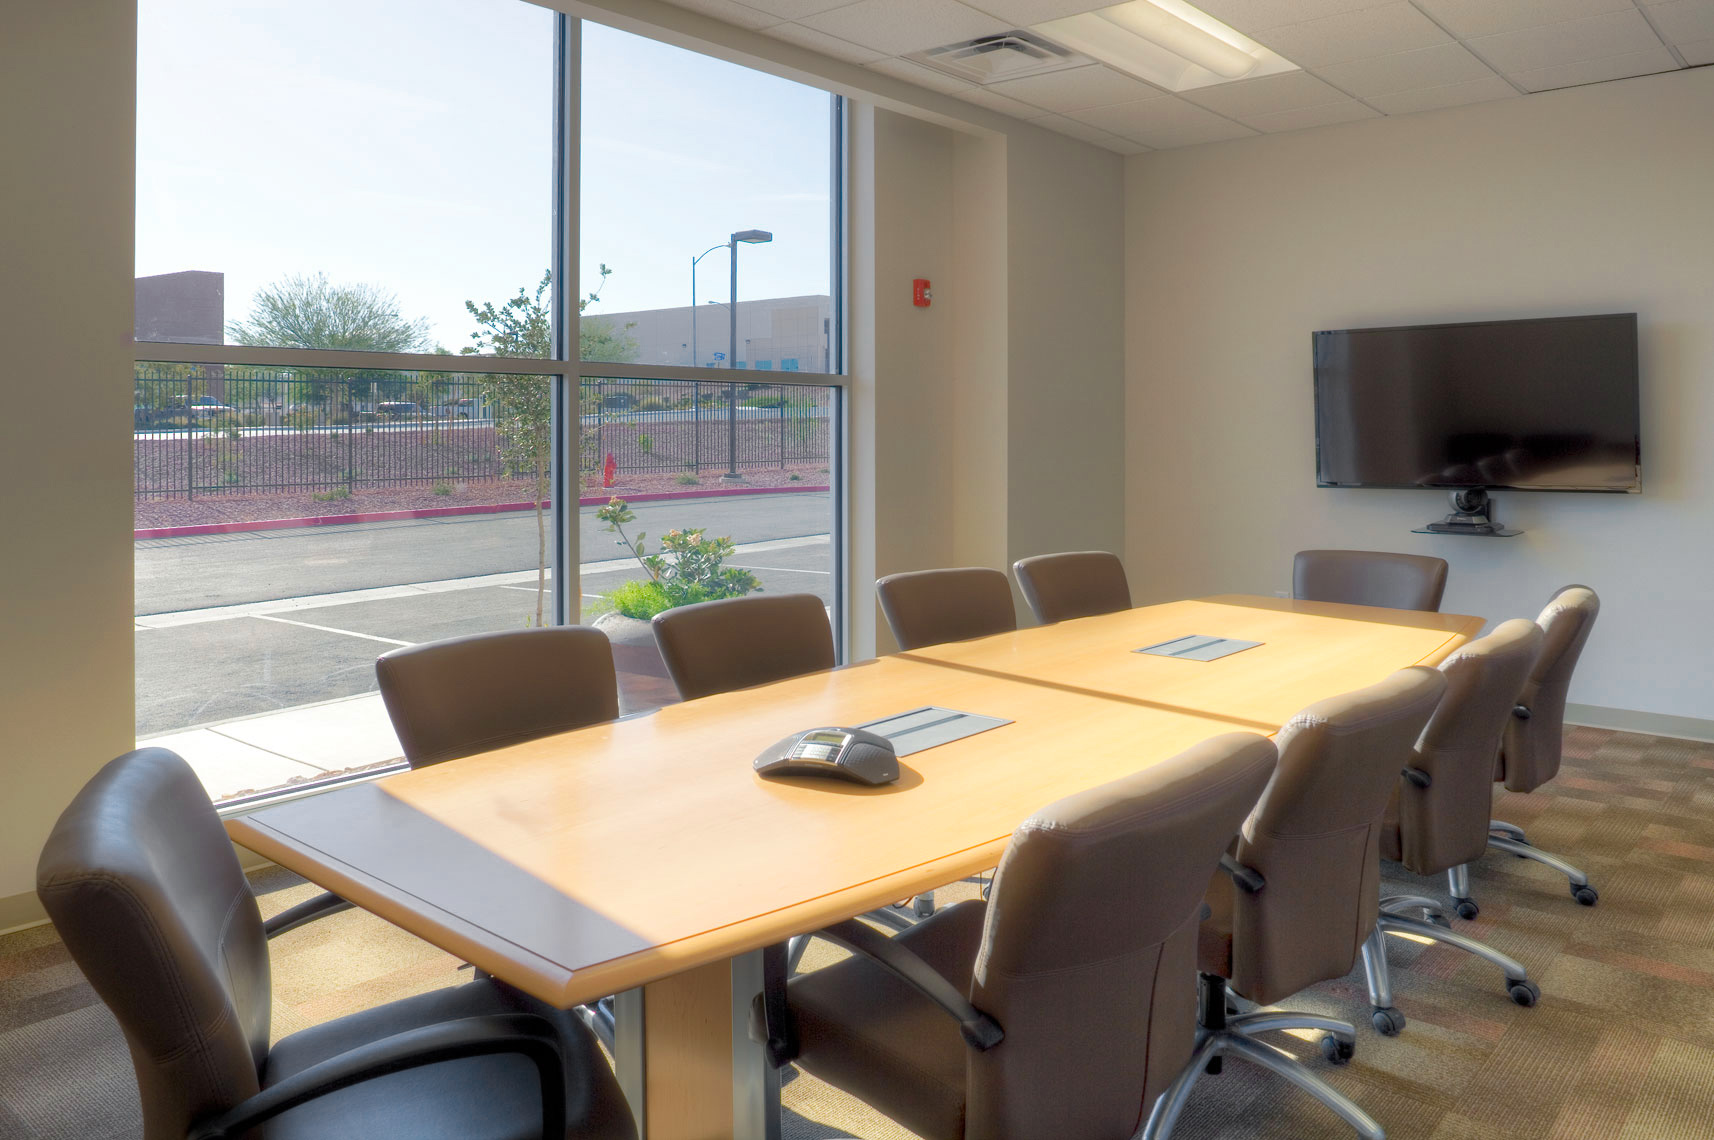 Conference room at Chelten House Foods in Las Vegas, NV